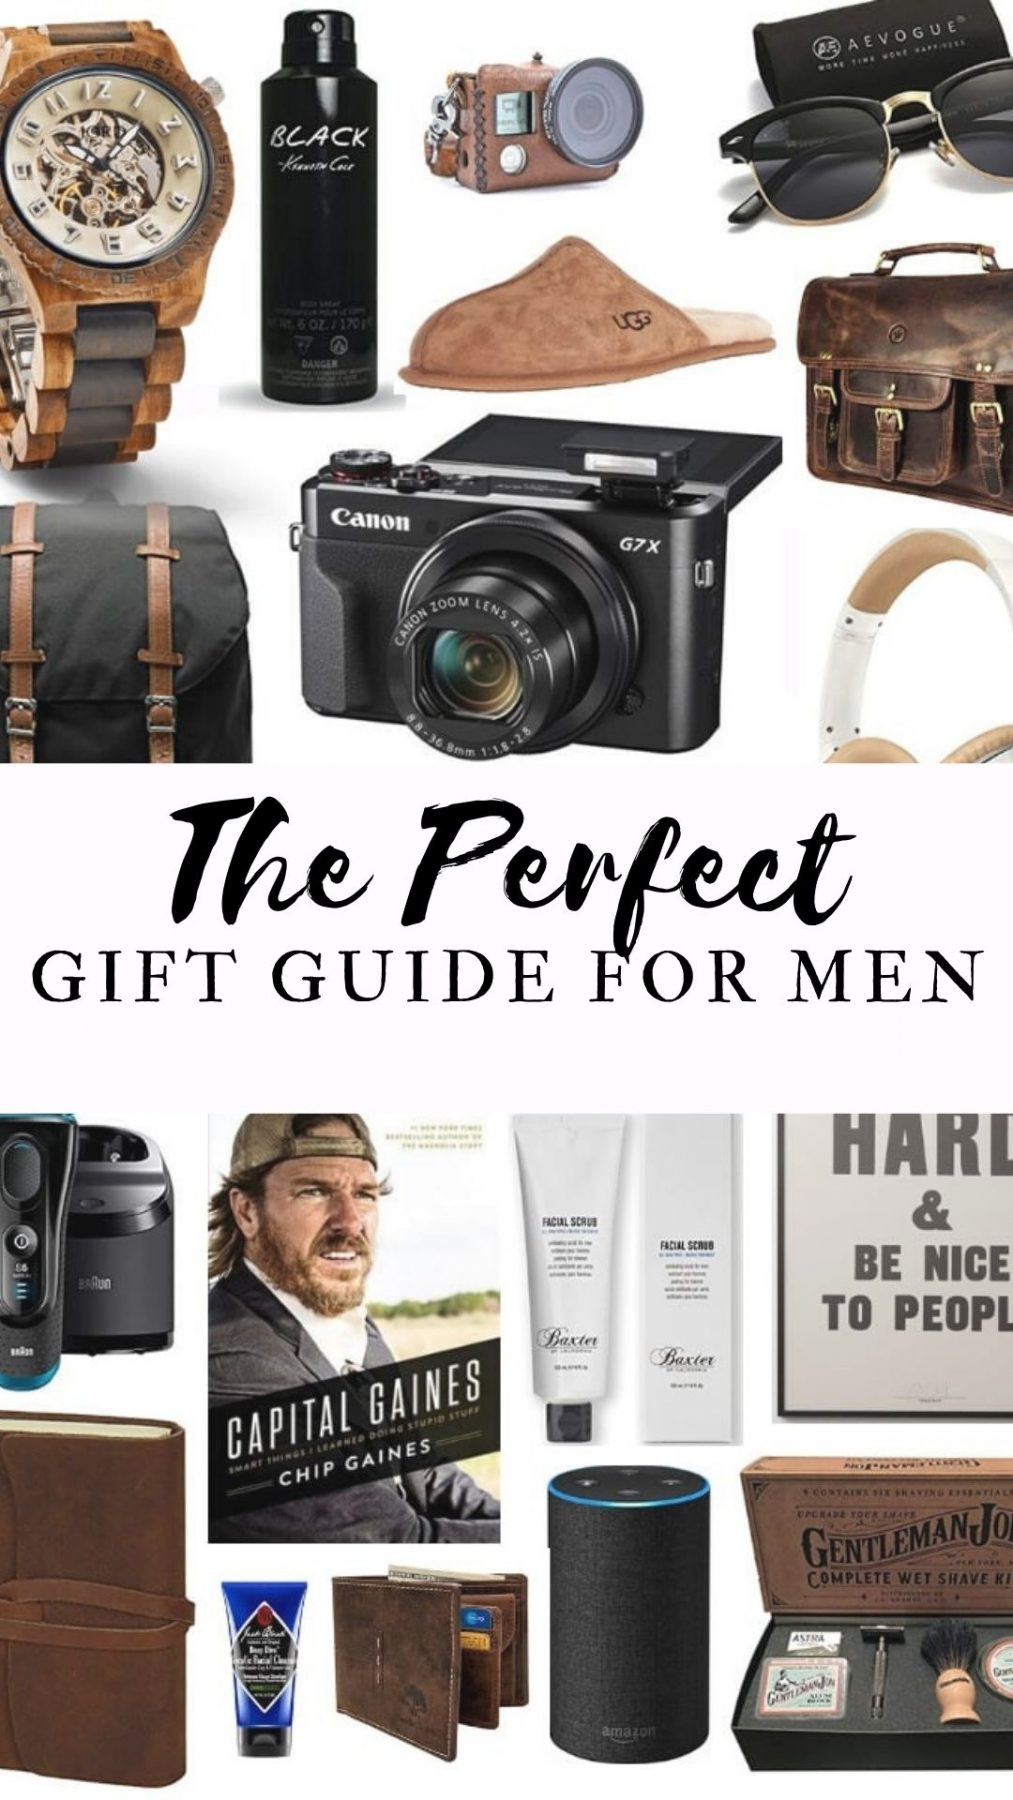 The Perfect Gift Guide for Men